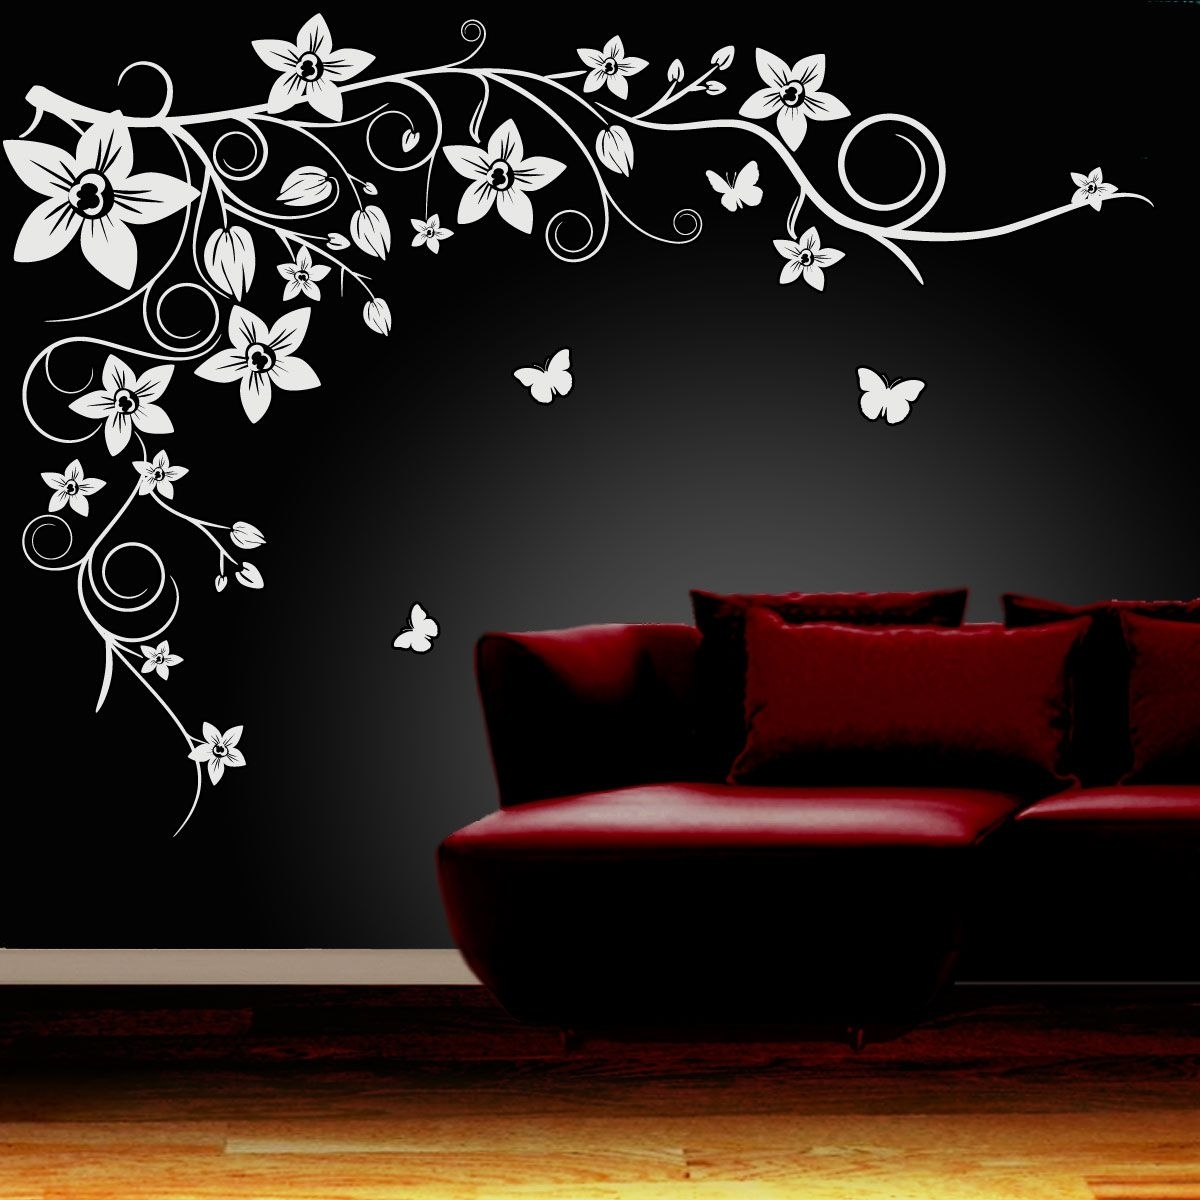 Wall Art Ideas Design : Black Flower Wall Art Simple Themes | Dh Throughout Latest Flower Wall Art (View 8 of 20)